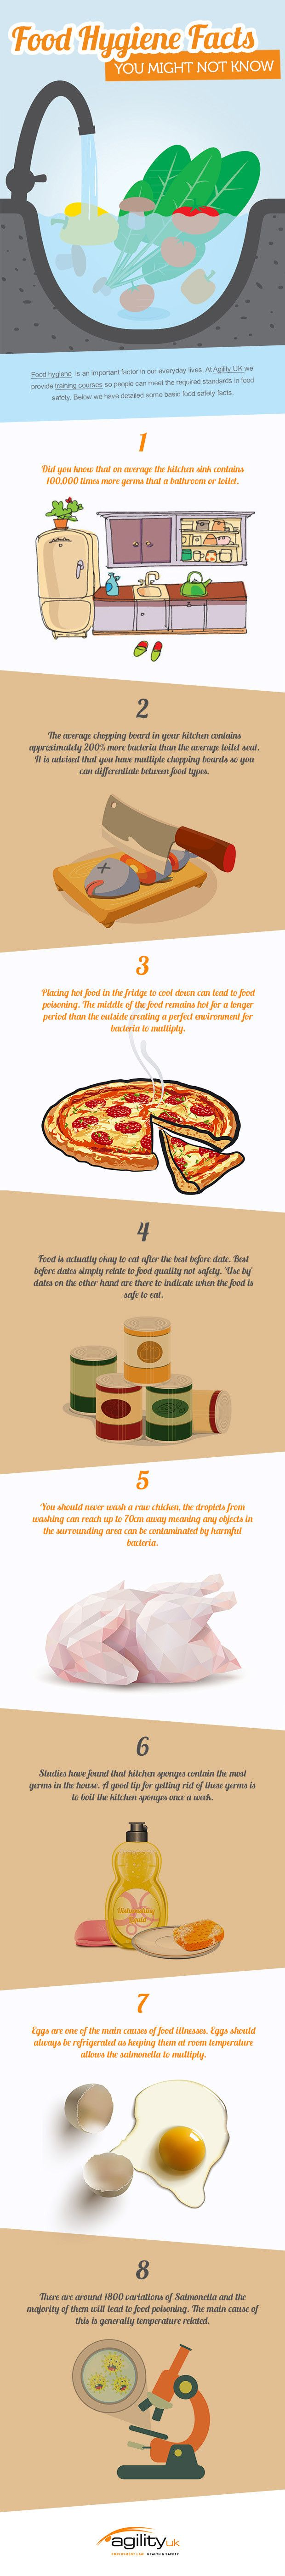 Food Hygiene Facts You Might Not Know #infographic #Food #Health #Facts